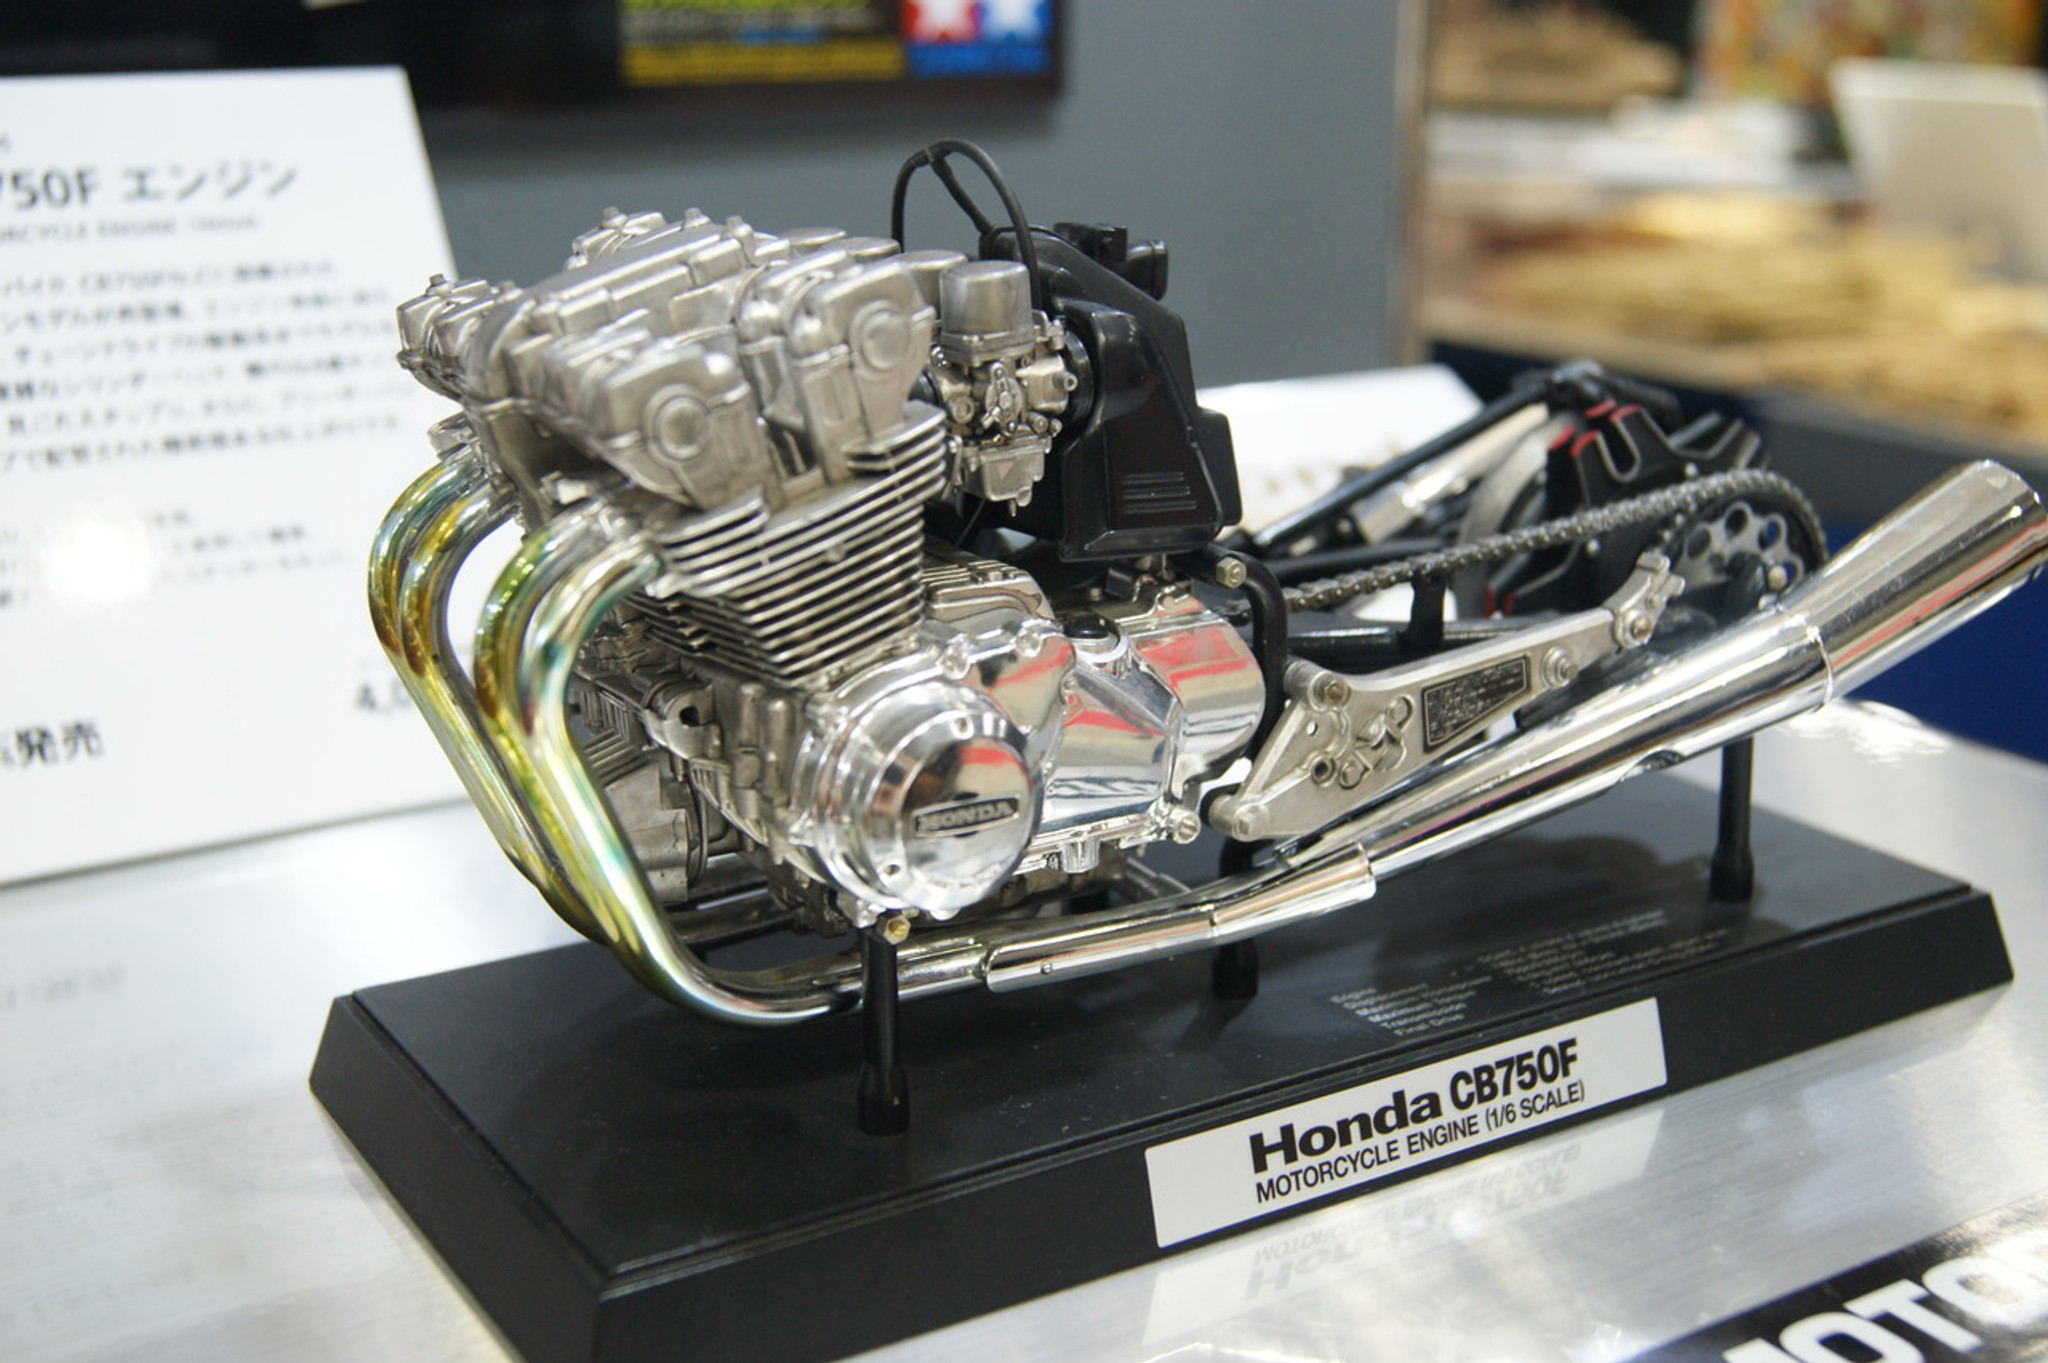 Tamiya Honda CB750F Motorcycle Engine 1/6 kit | PlazaJapan